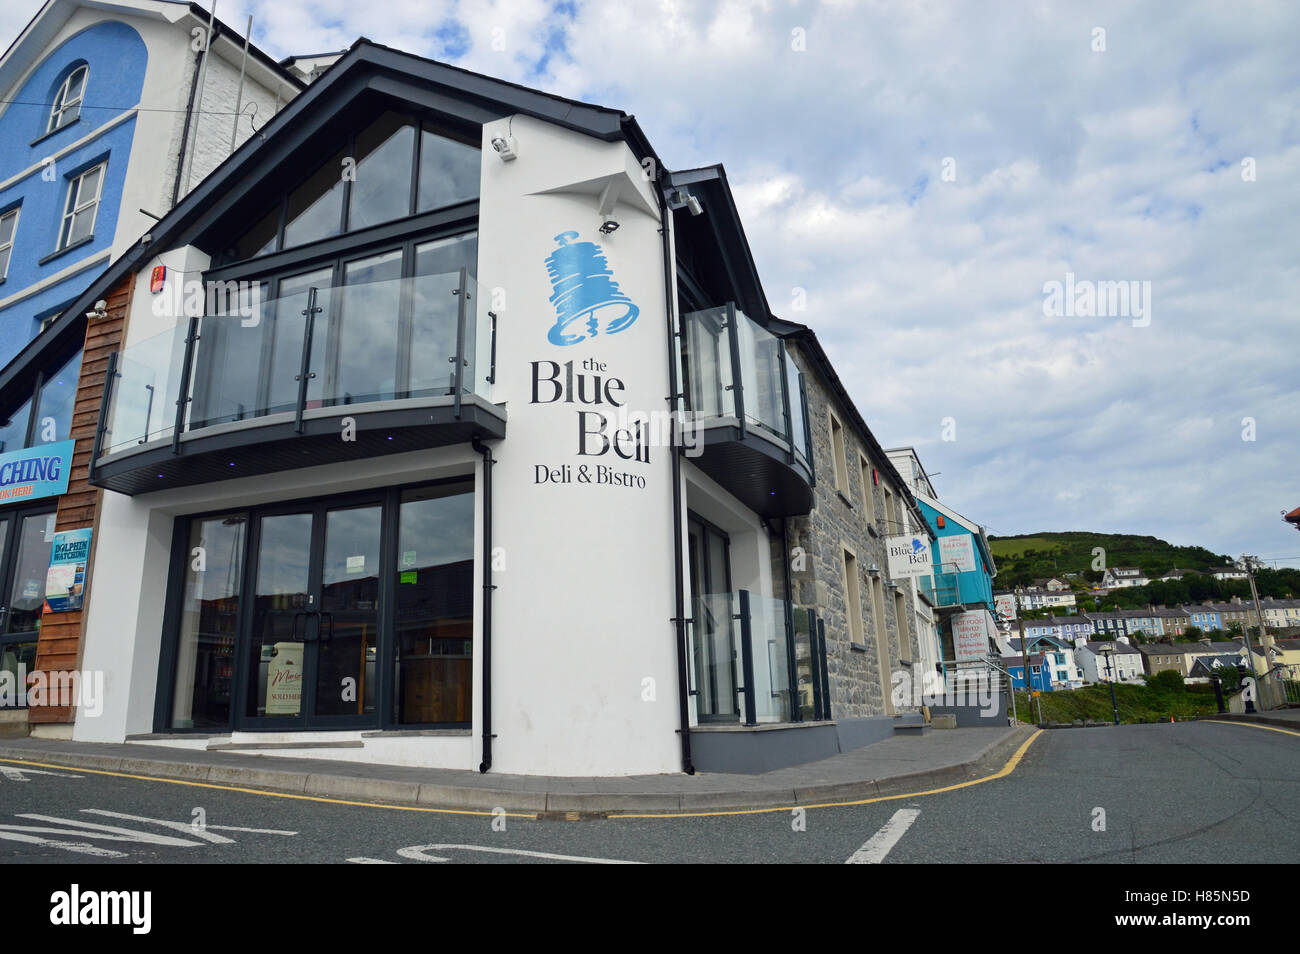 The Blue Bell, Deli & Bistro, New Quay, Ceredigion, Wales - Stock Image